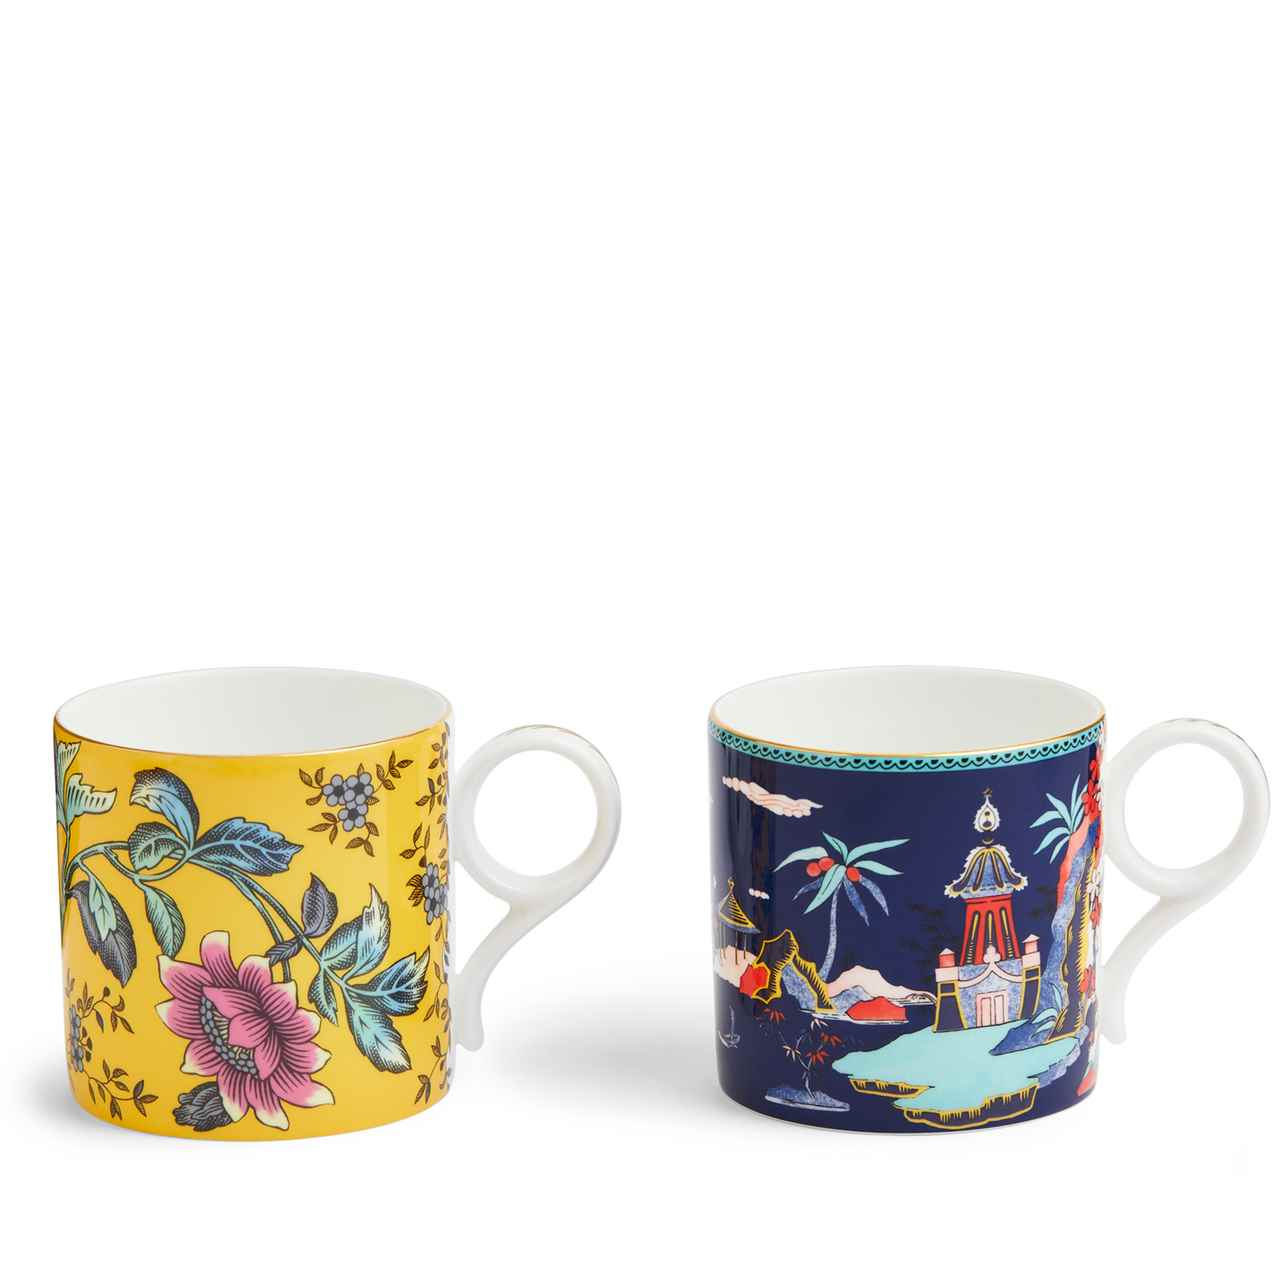 Wonderlust Mug, Set of 2